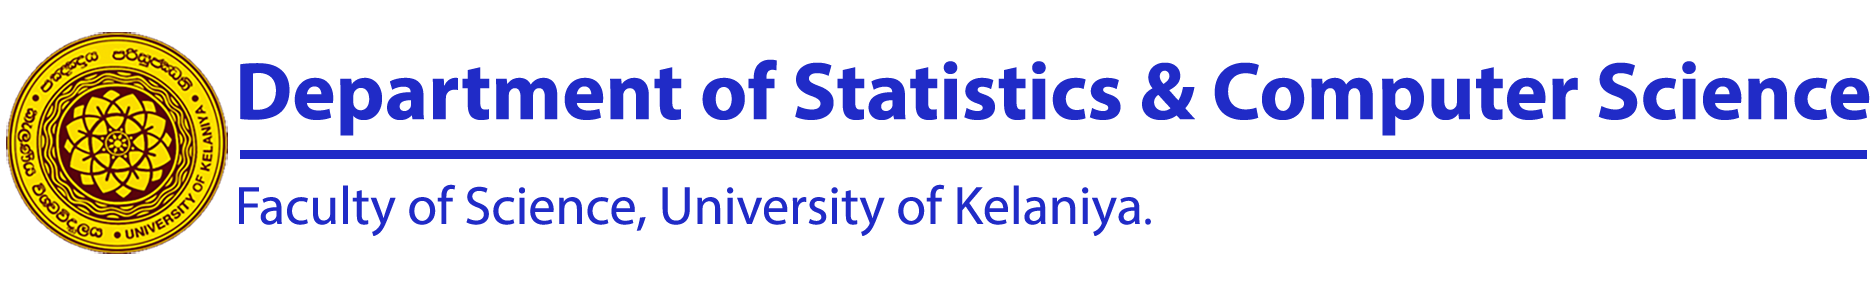 Department of Statistics & Computer Science - Home